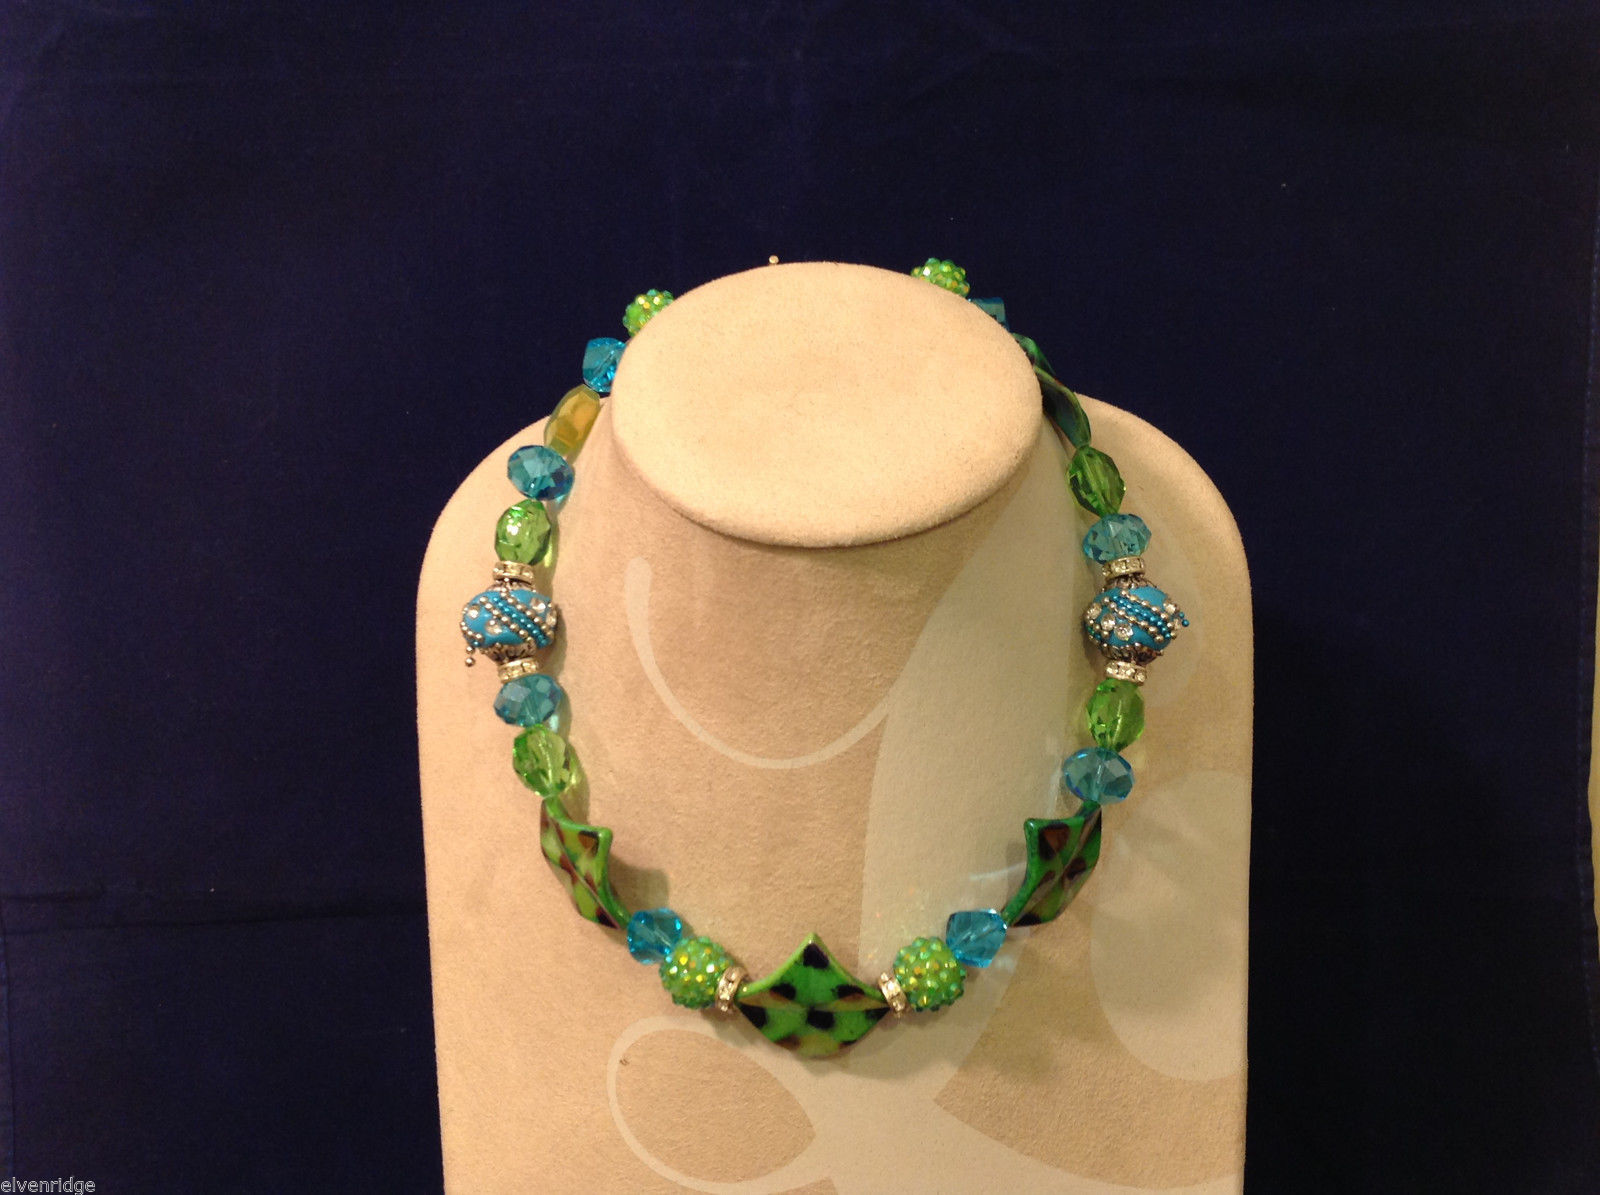 Light Blue and Green Beaded Hand Made String Necklace Unique